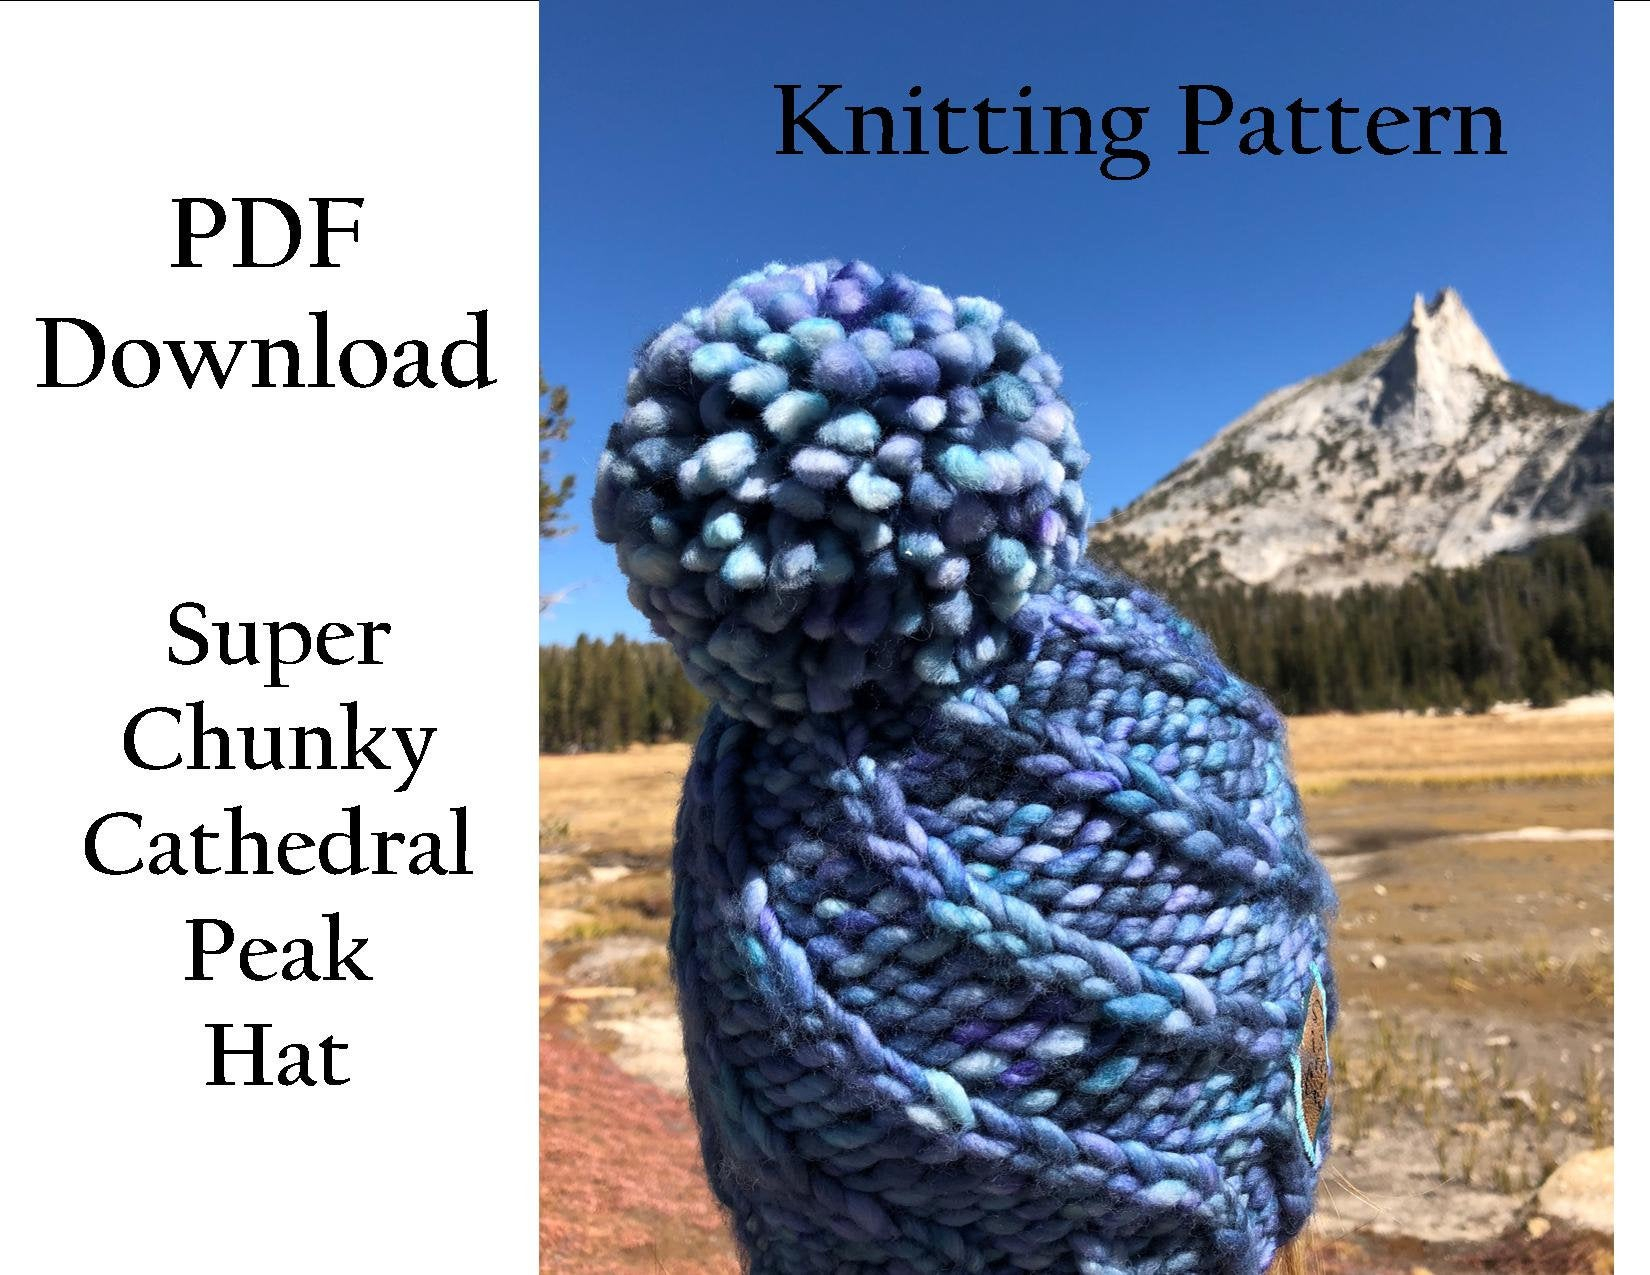 Free Knitting Patterns For Super Chunky Yarn Hat Knitting Pattern Super Chunky Cathedral Peak Hat Malabrigo Rasta Hat Pattern Easy Knitting Pattern